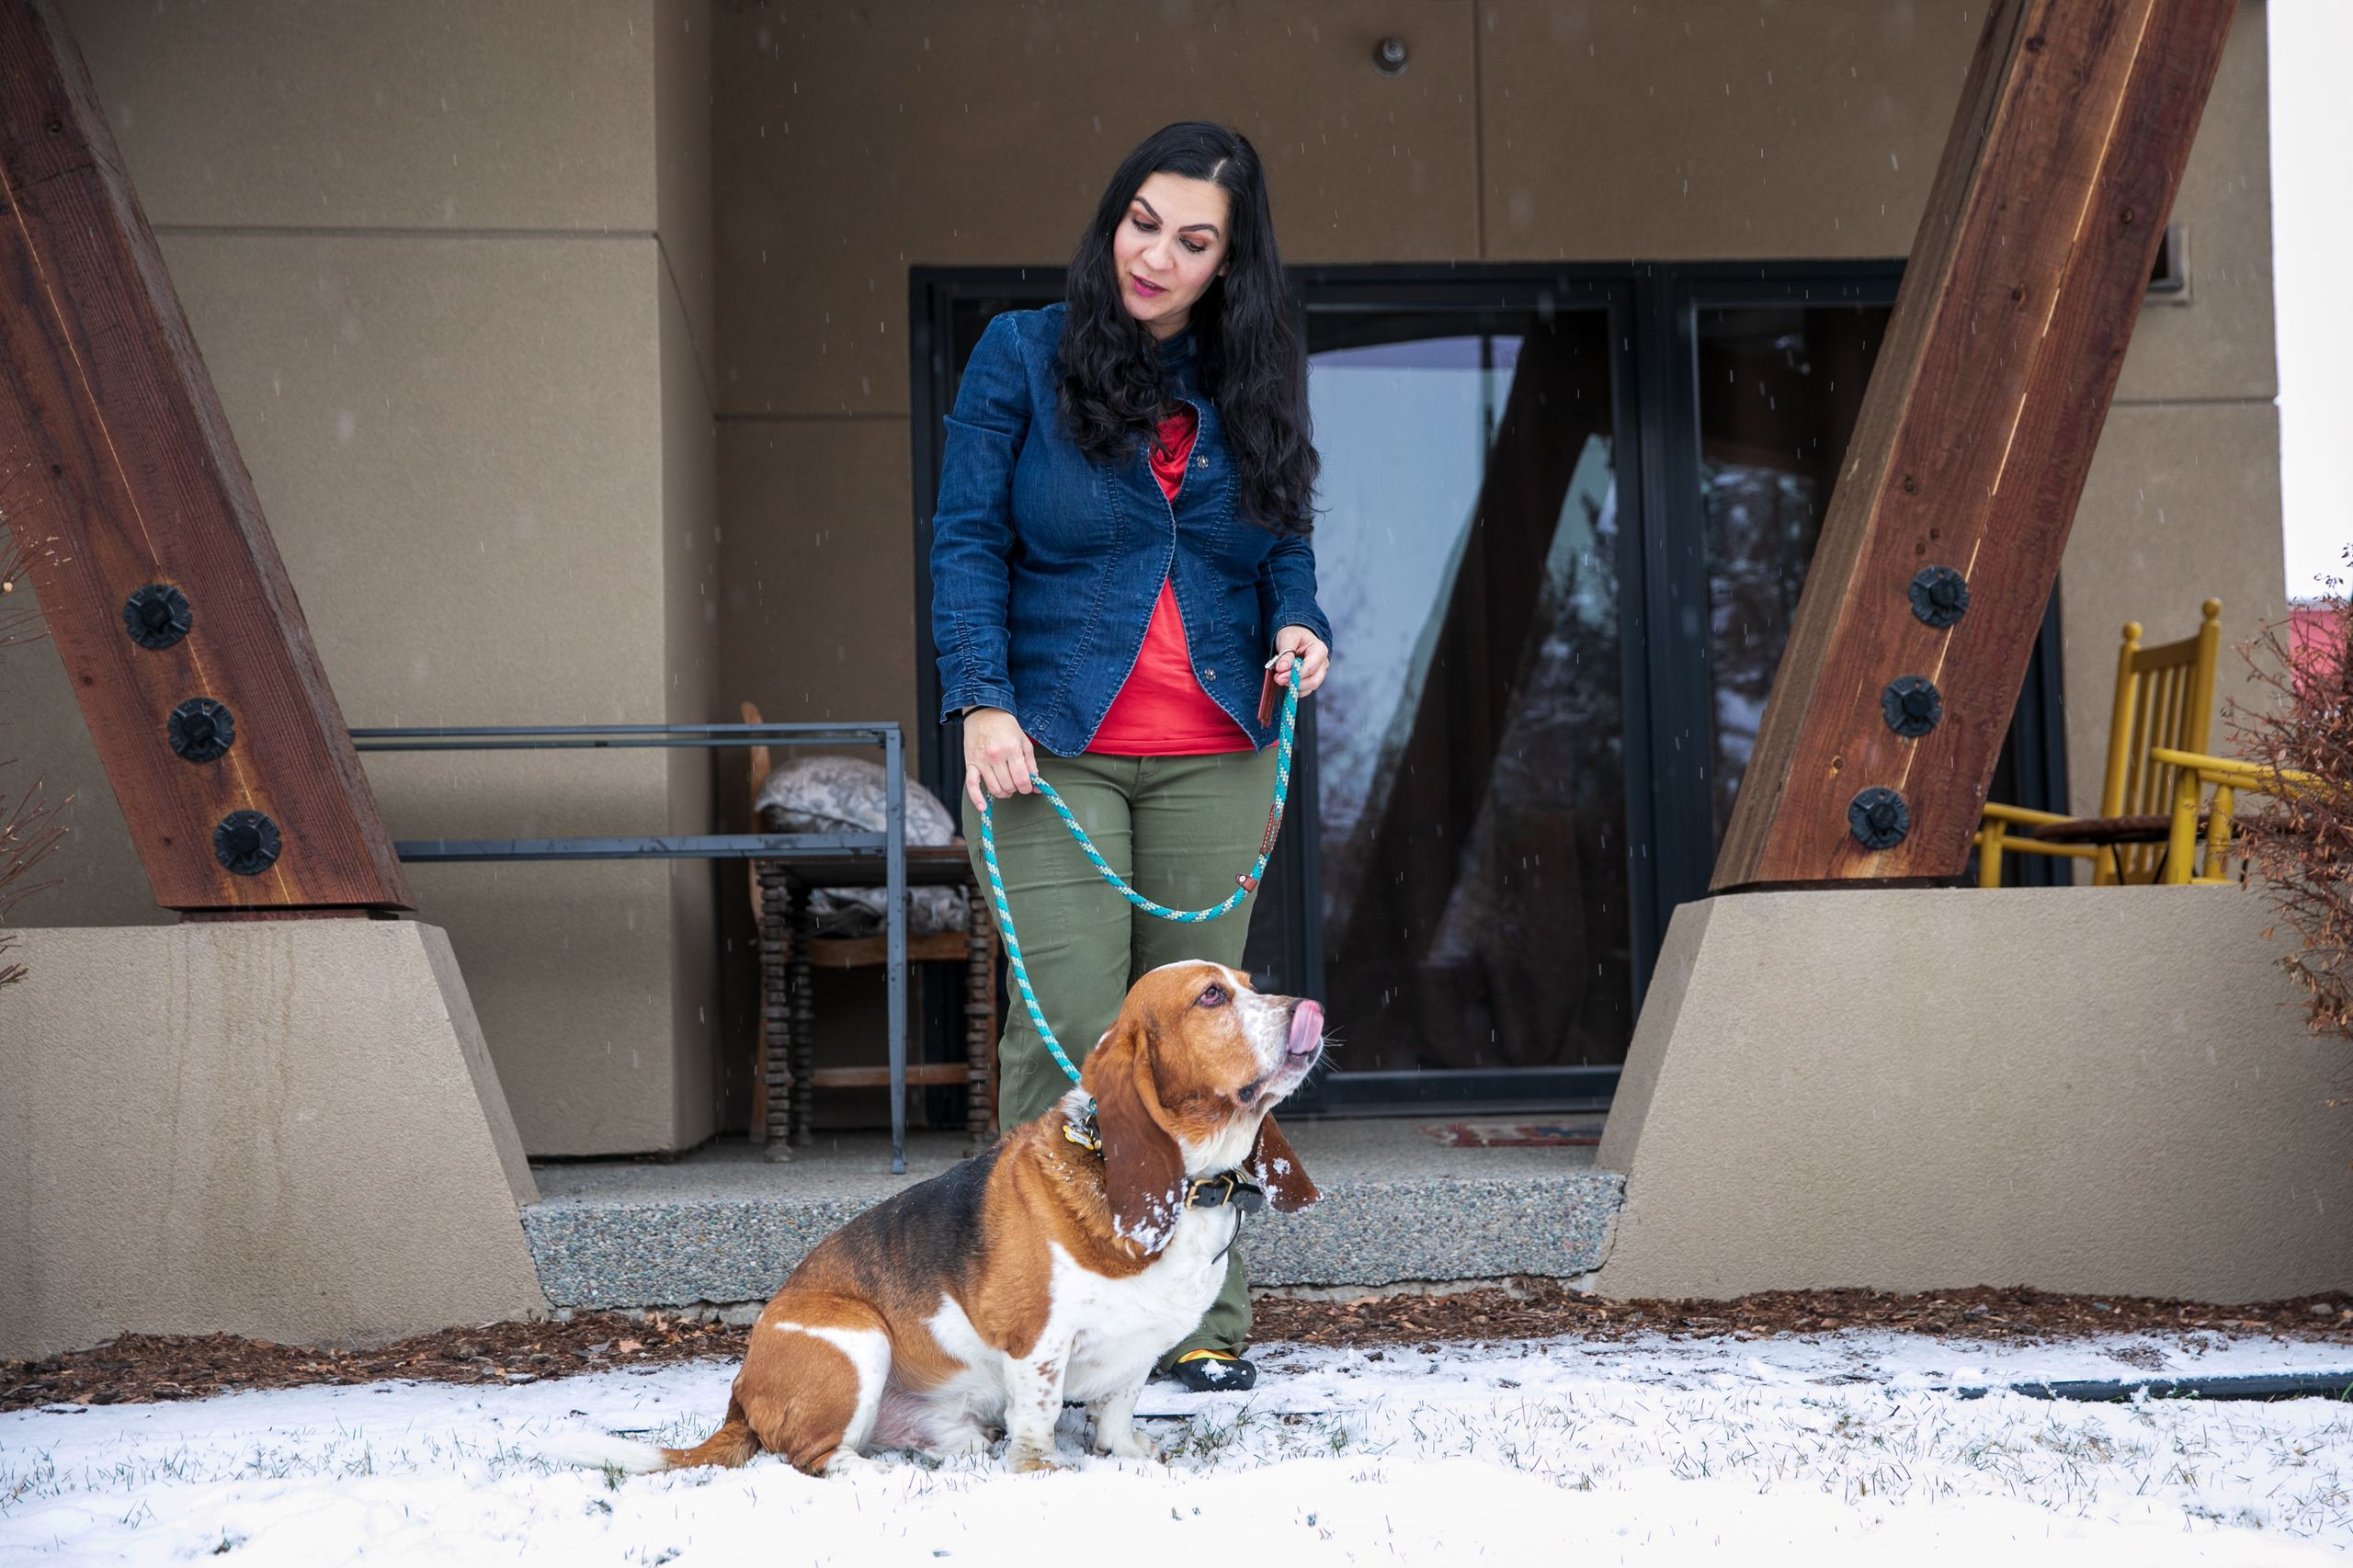 Nina Kouprianova takes her basset hound, Rody, out in Whitefish, Montana.